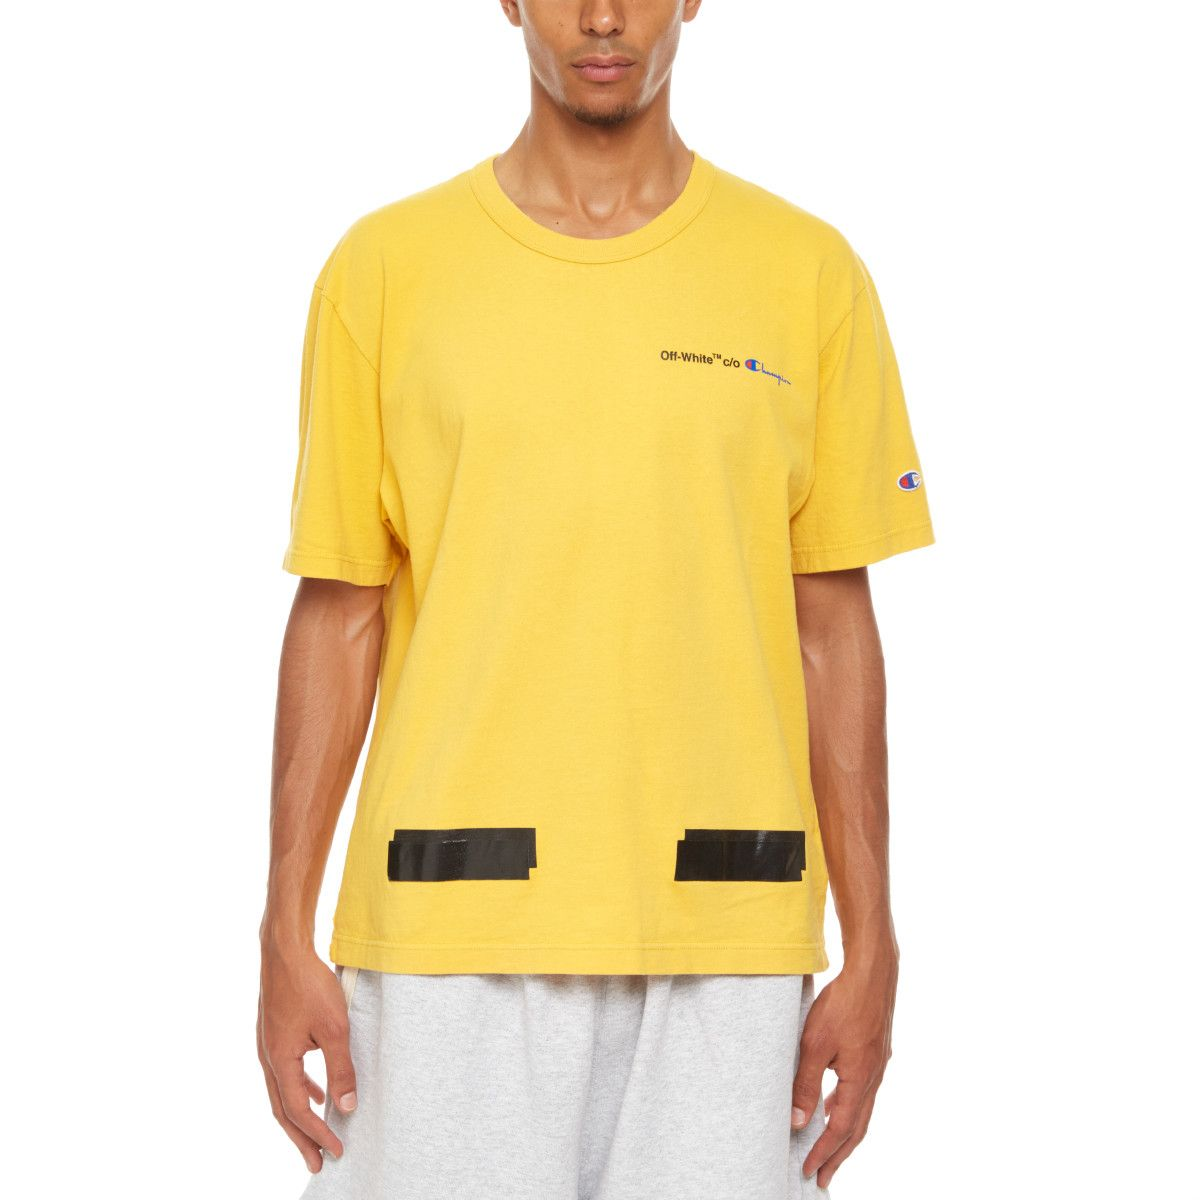 ff19e02f Champion t-shirt from the S/S2018 Off-White c/o Virgil Abloh collection in  yellow